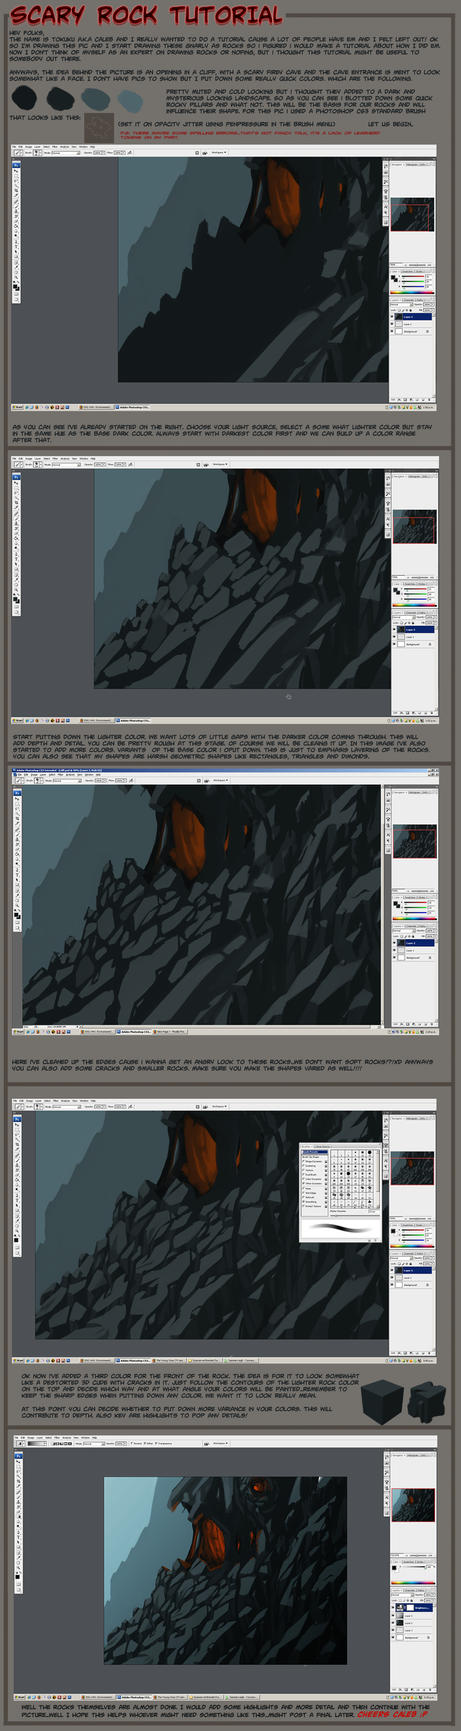 Rocky Cliff Tutorial by tokuku